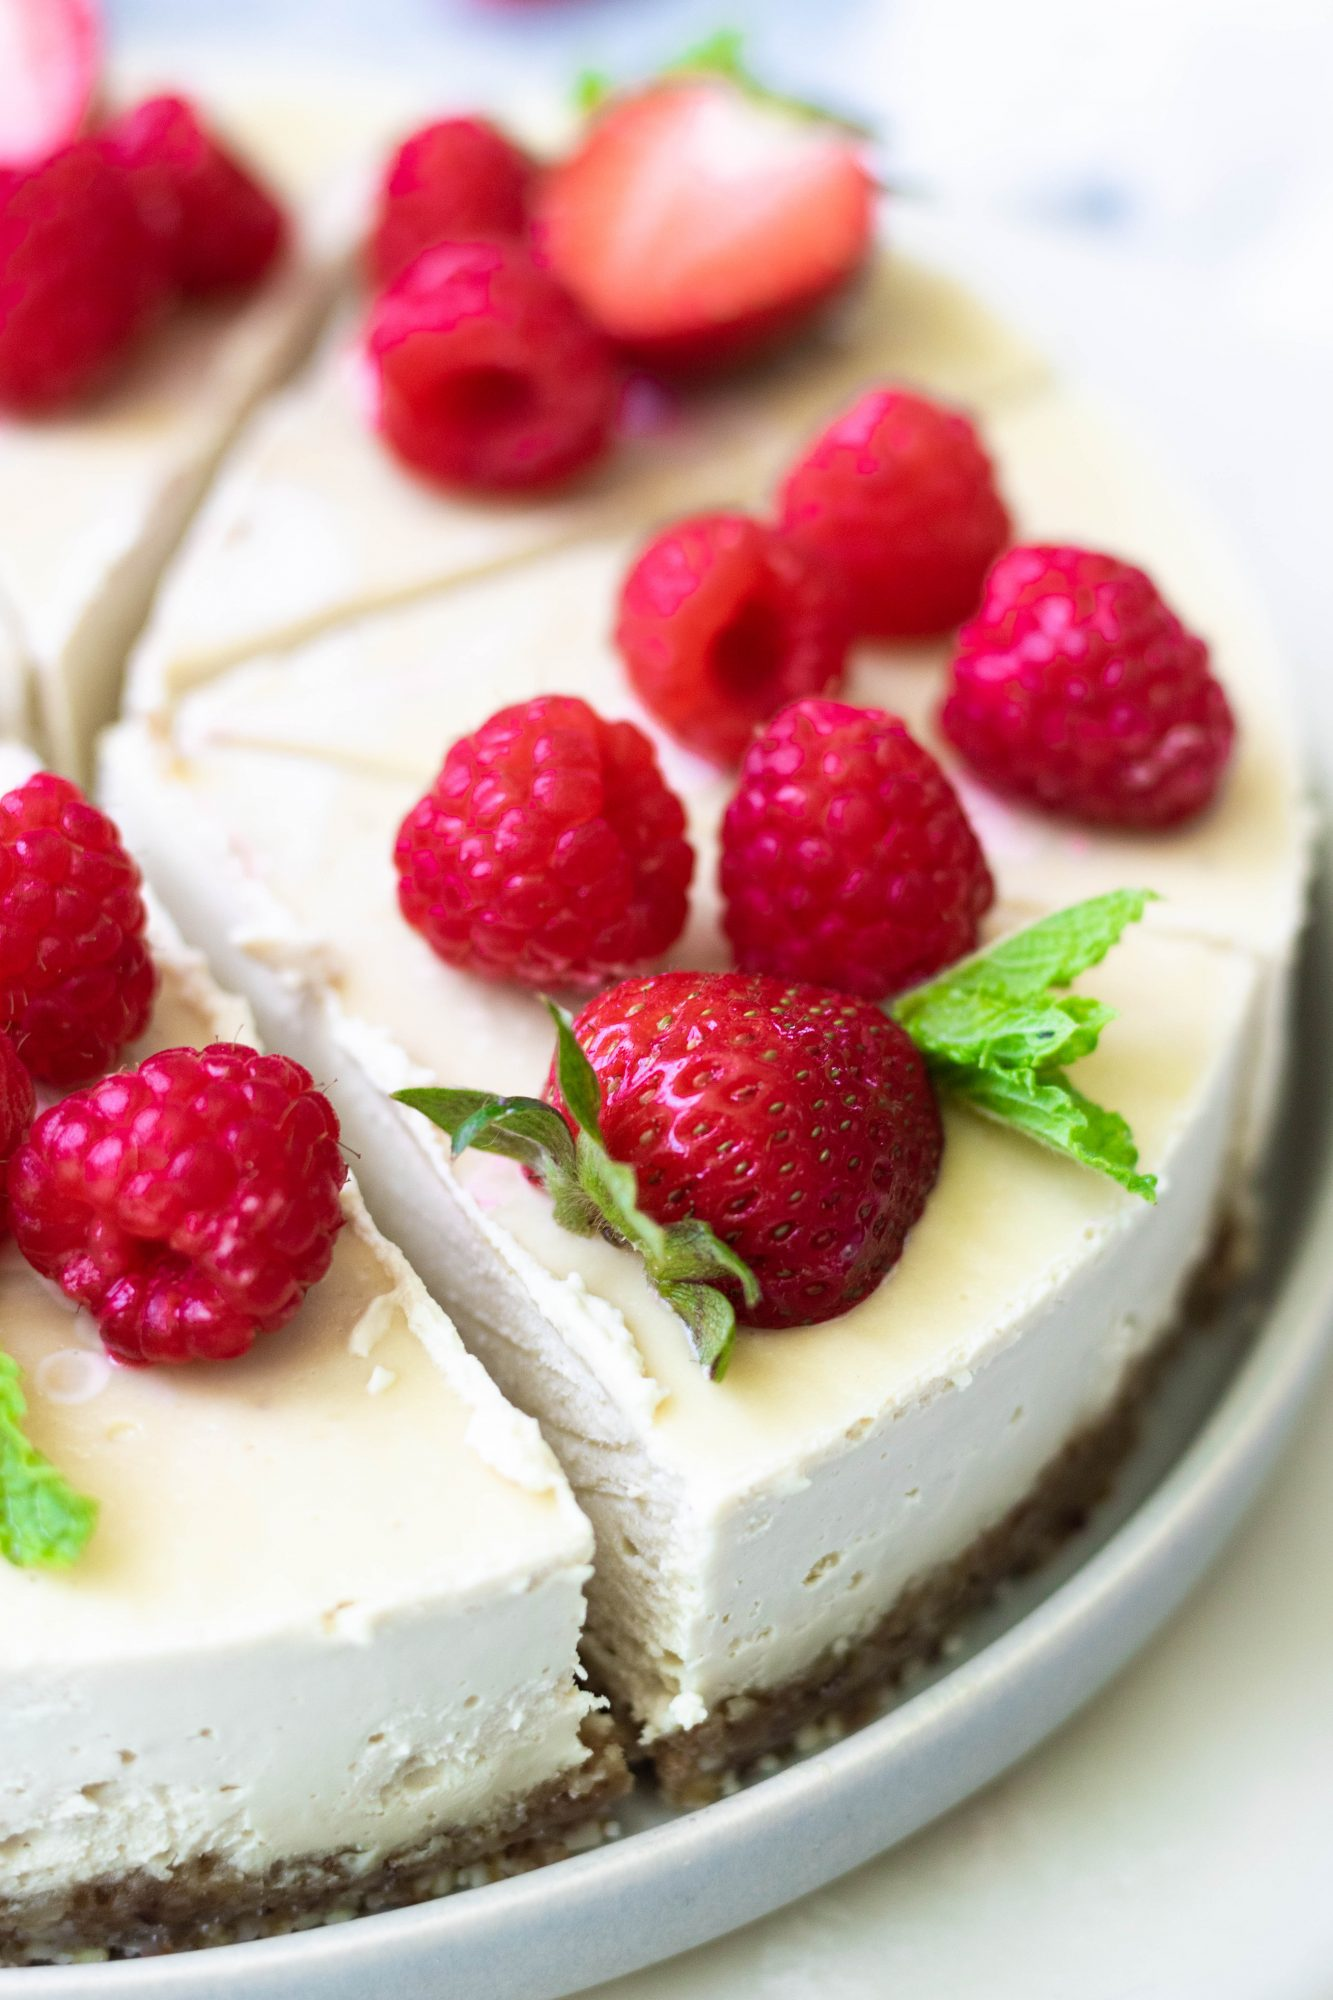 Healthy Vegan Cheesecake Recipe